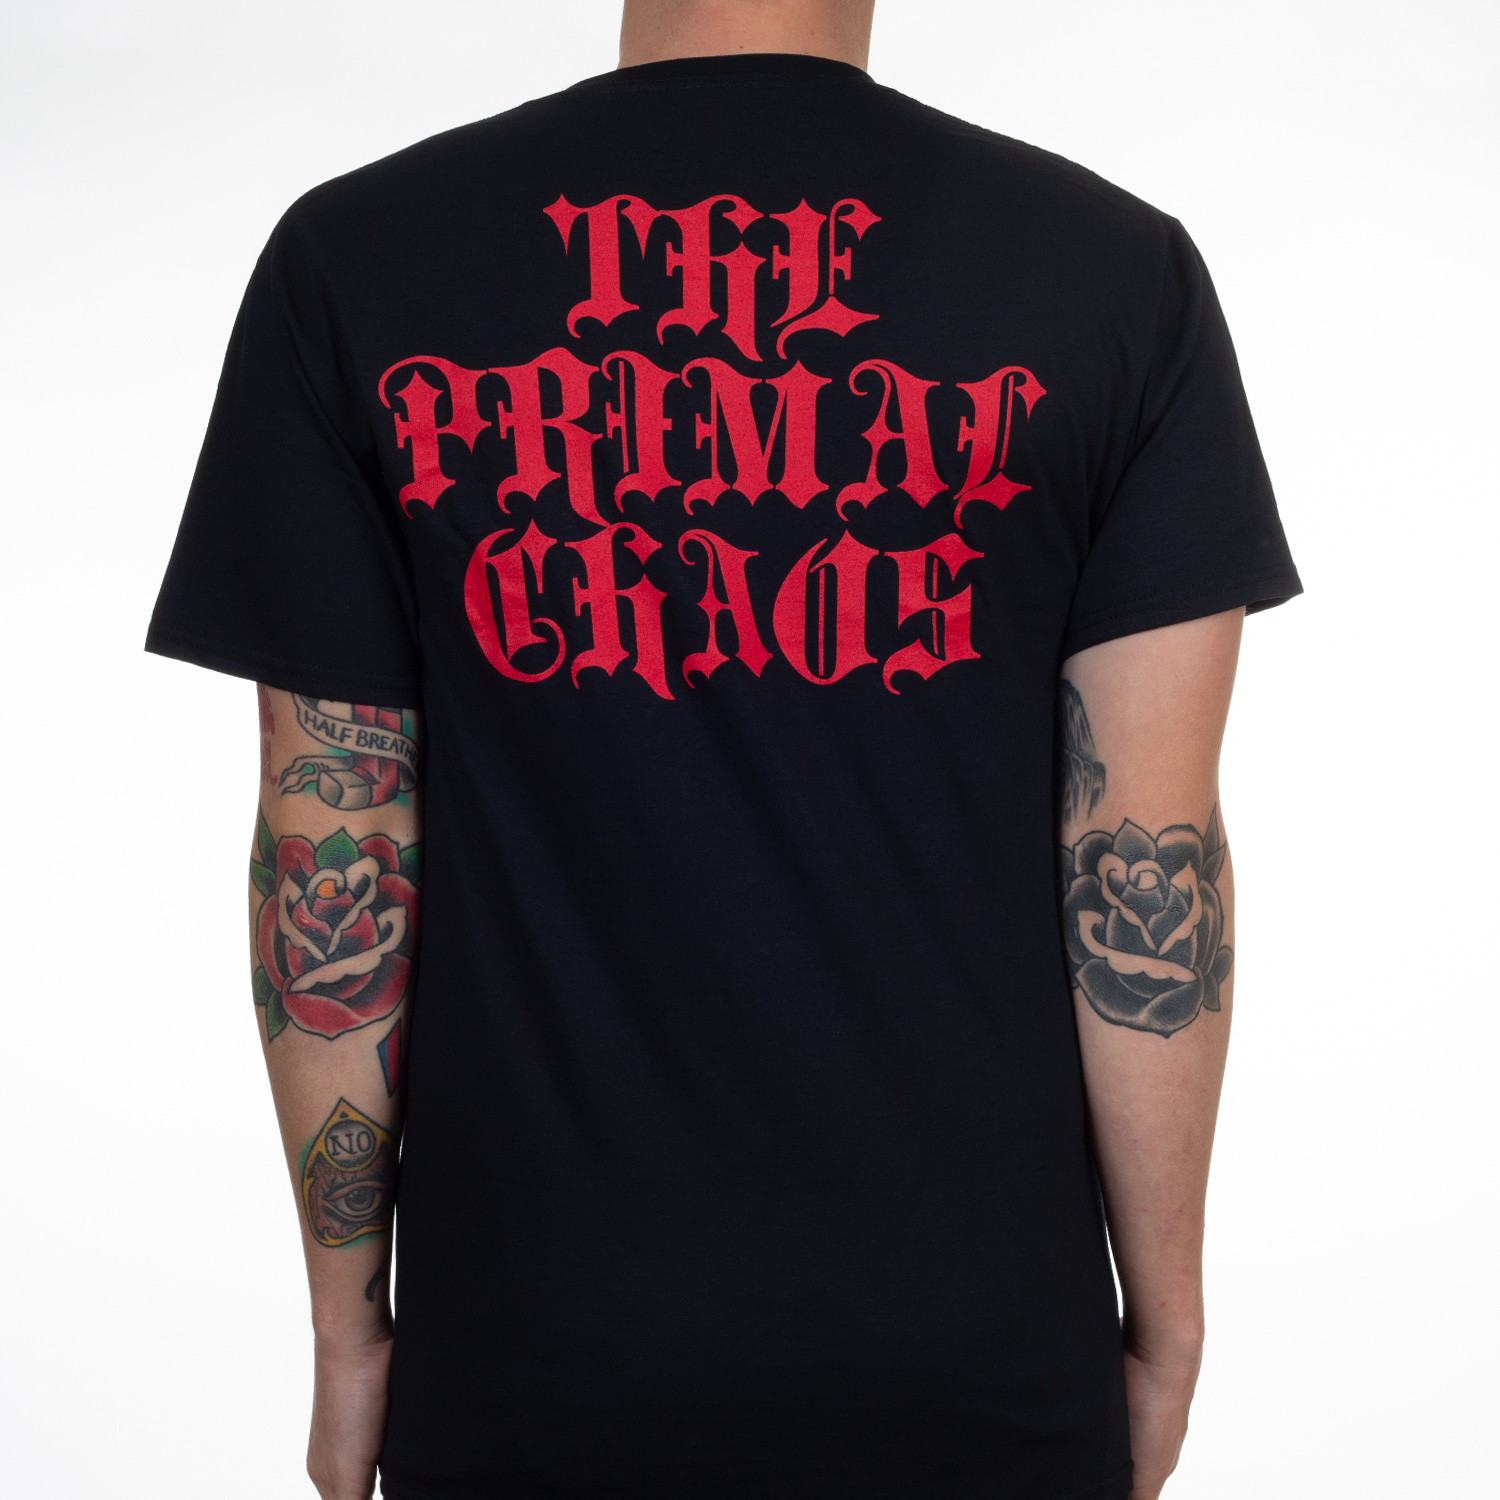 The Primal Chaos